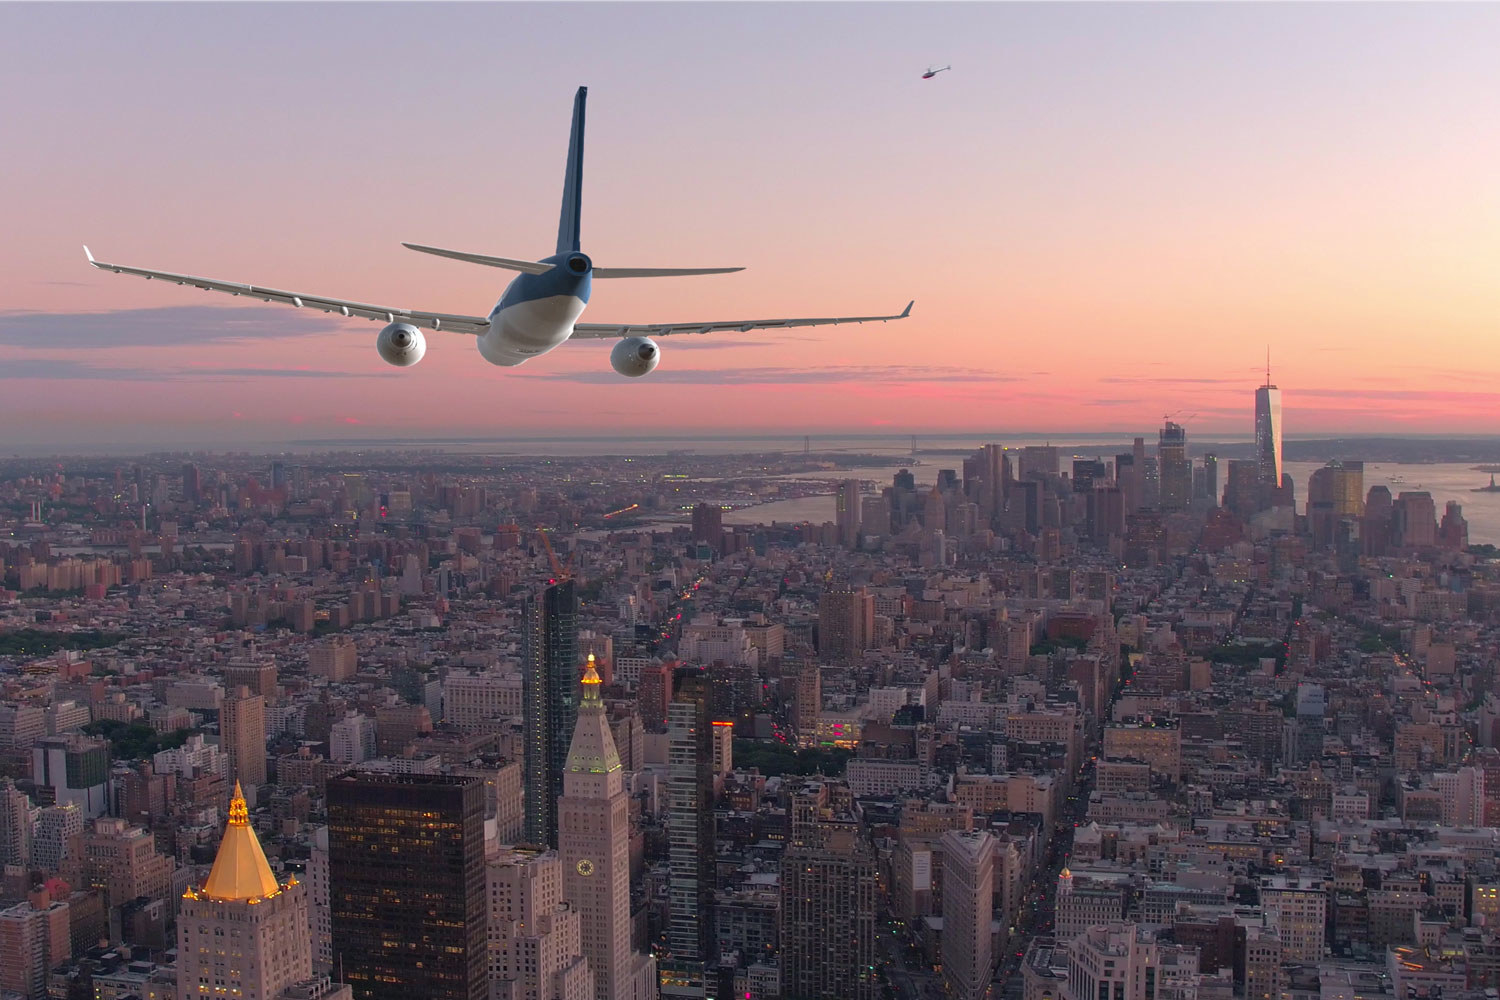 A plane landing in NYC